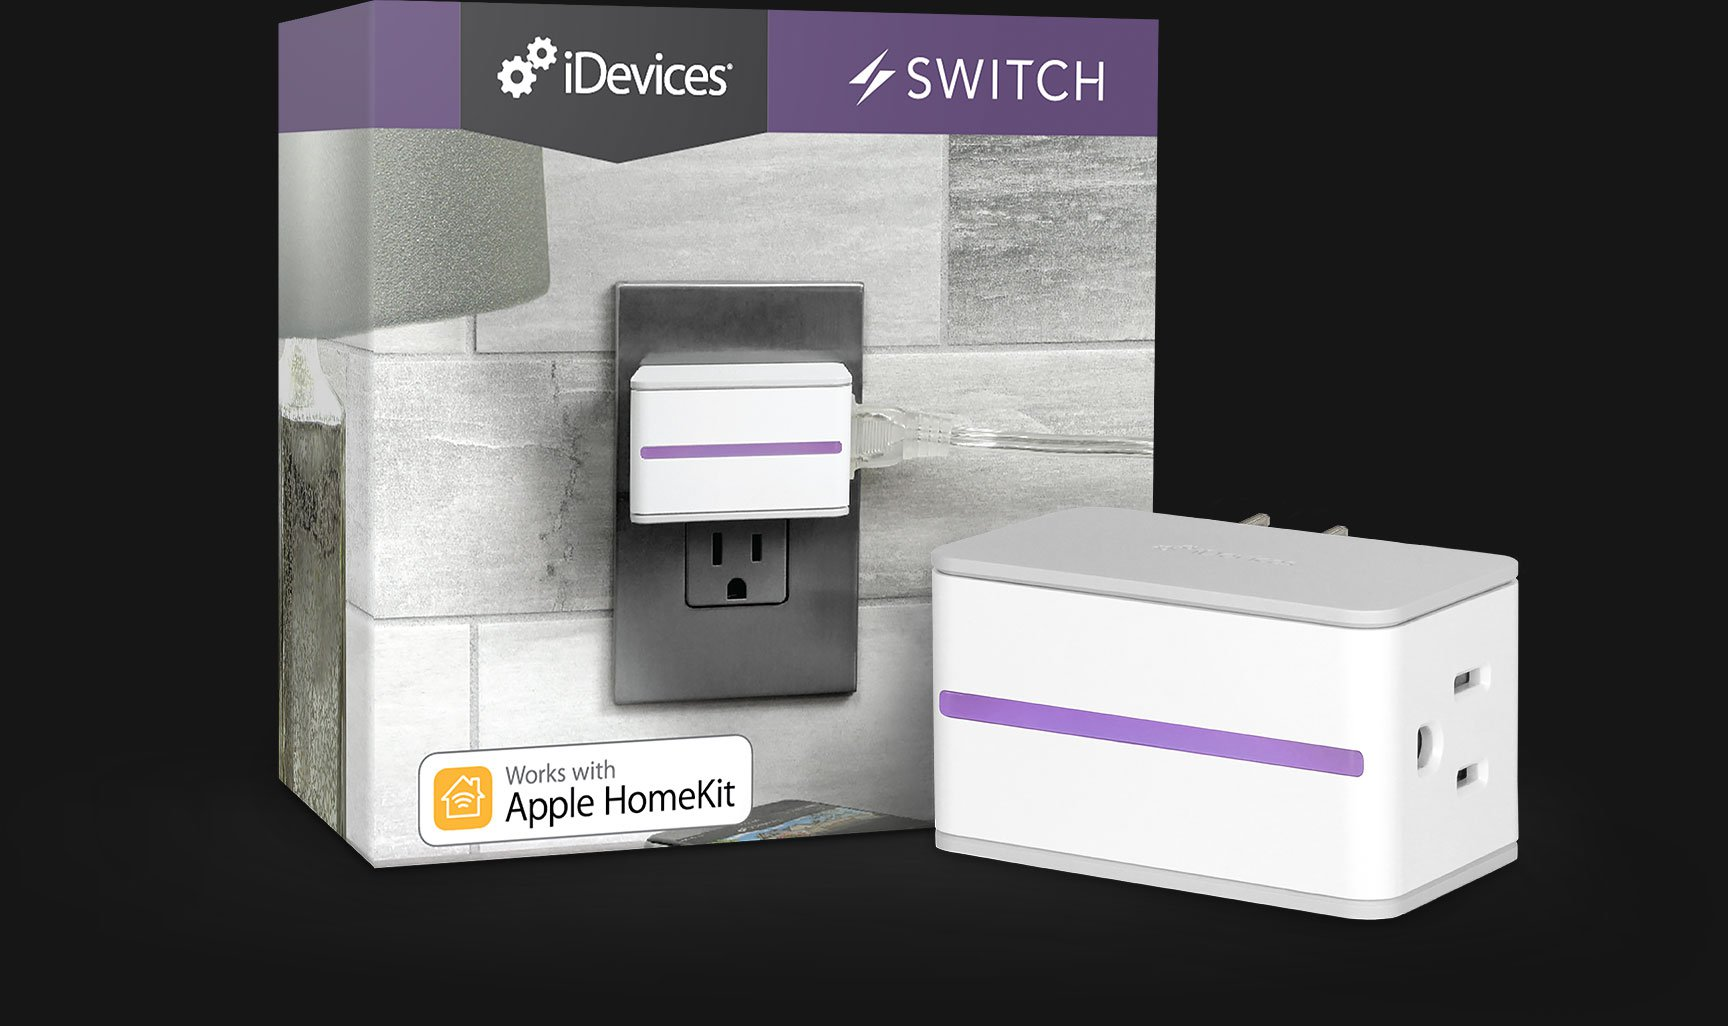 iDevices Switch, Smart Plug, Plug and Play, Apple HomeKit, Amazon Alexa, Google Assistant, iOS, Samsung, Smart Home, Connected, Voice Control, Siri, Switch on your home, automated, App Store, Google Play